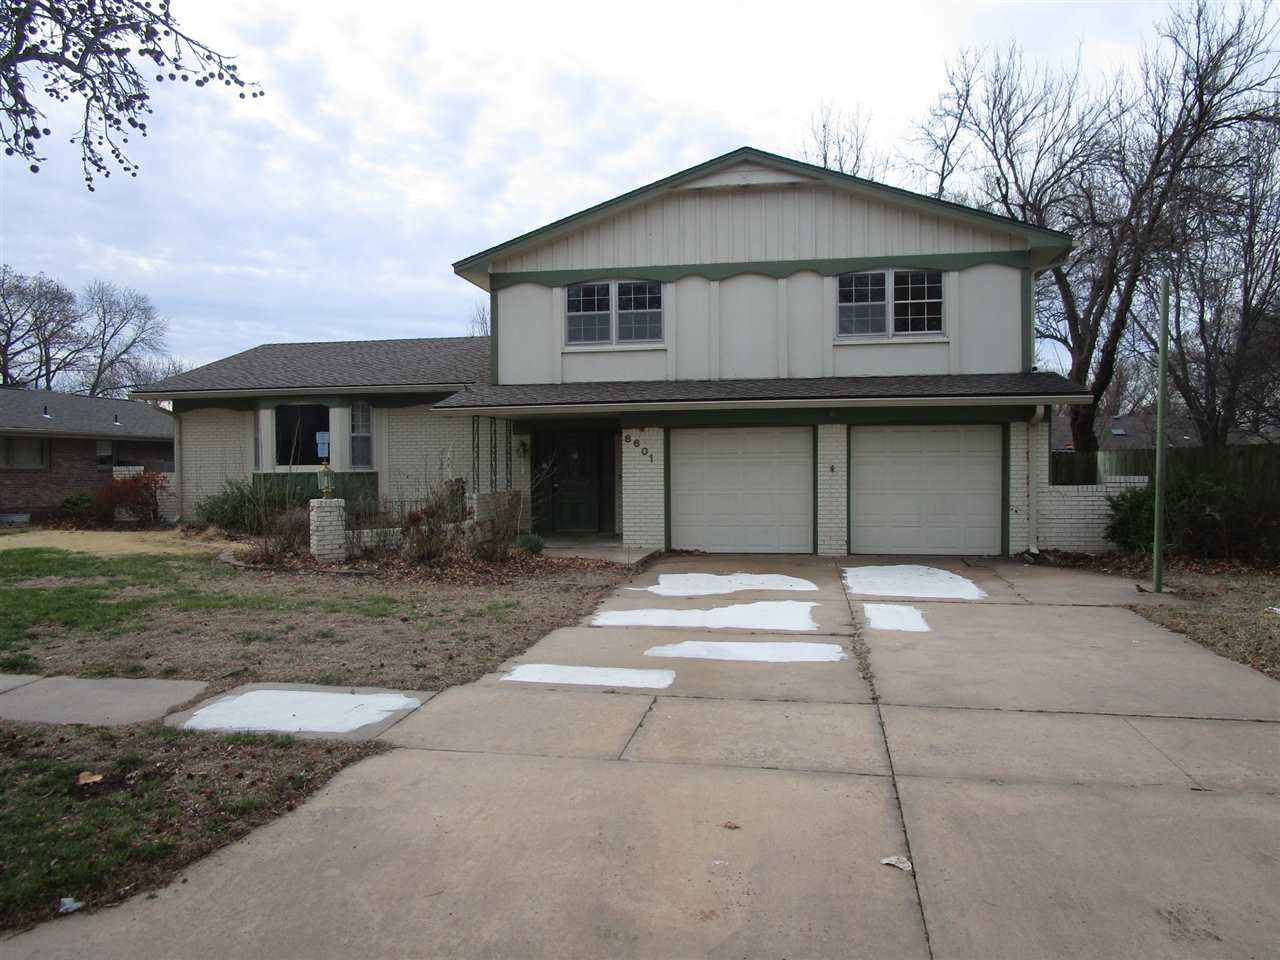 8601 E Tamarac St, Wichita, KS, 67206